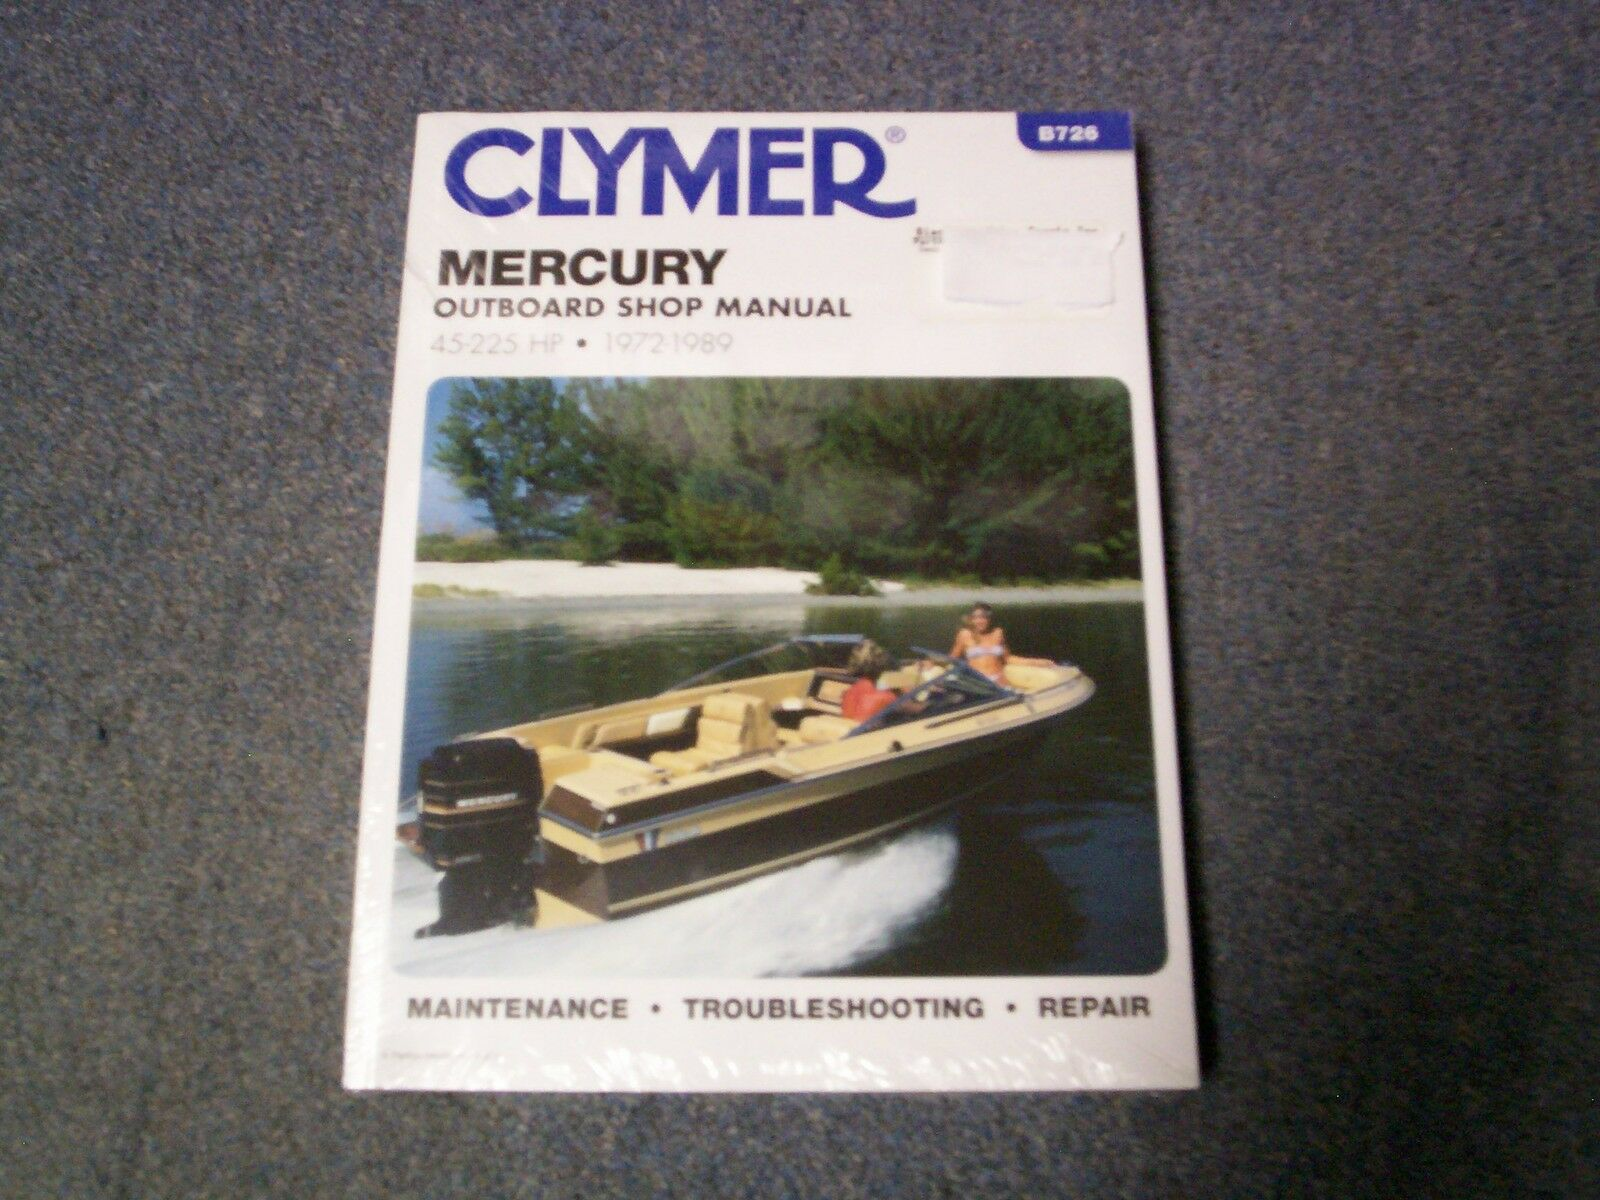 Clymer Mercury Outboard Shop Repair Manual 45 225 Hp 1972 1989 1988 150 Xr2 Wiring Diagrams 1 Of 1only Available